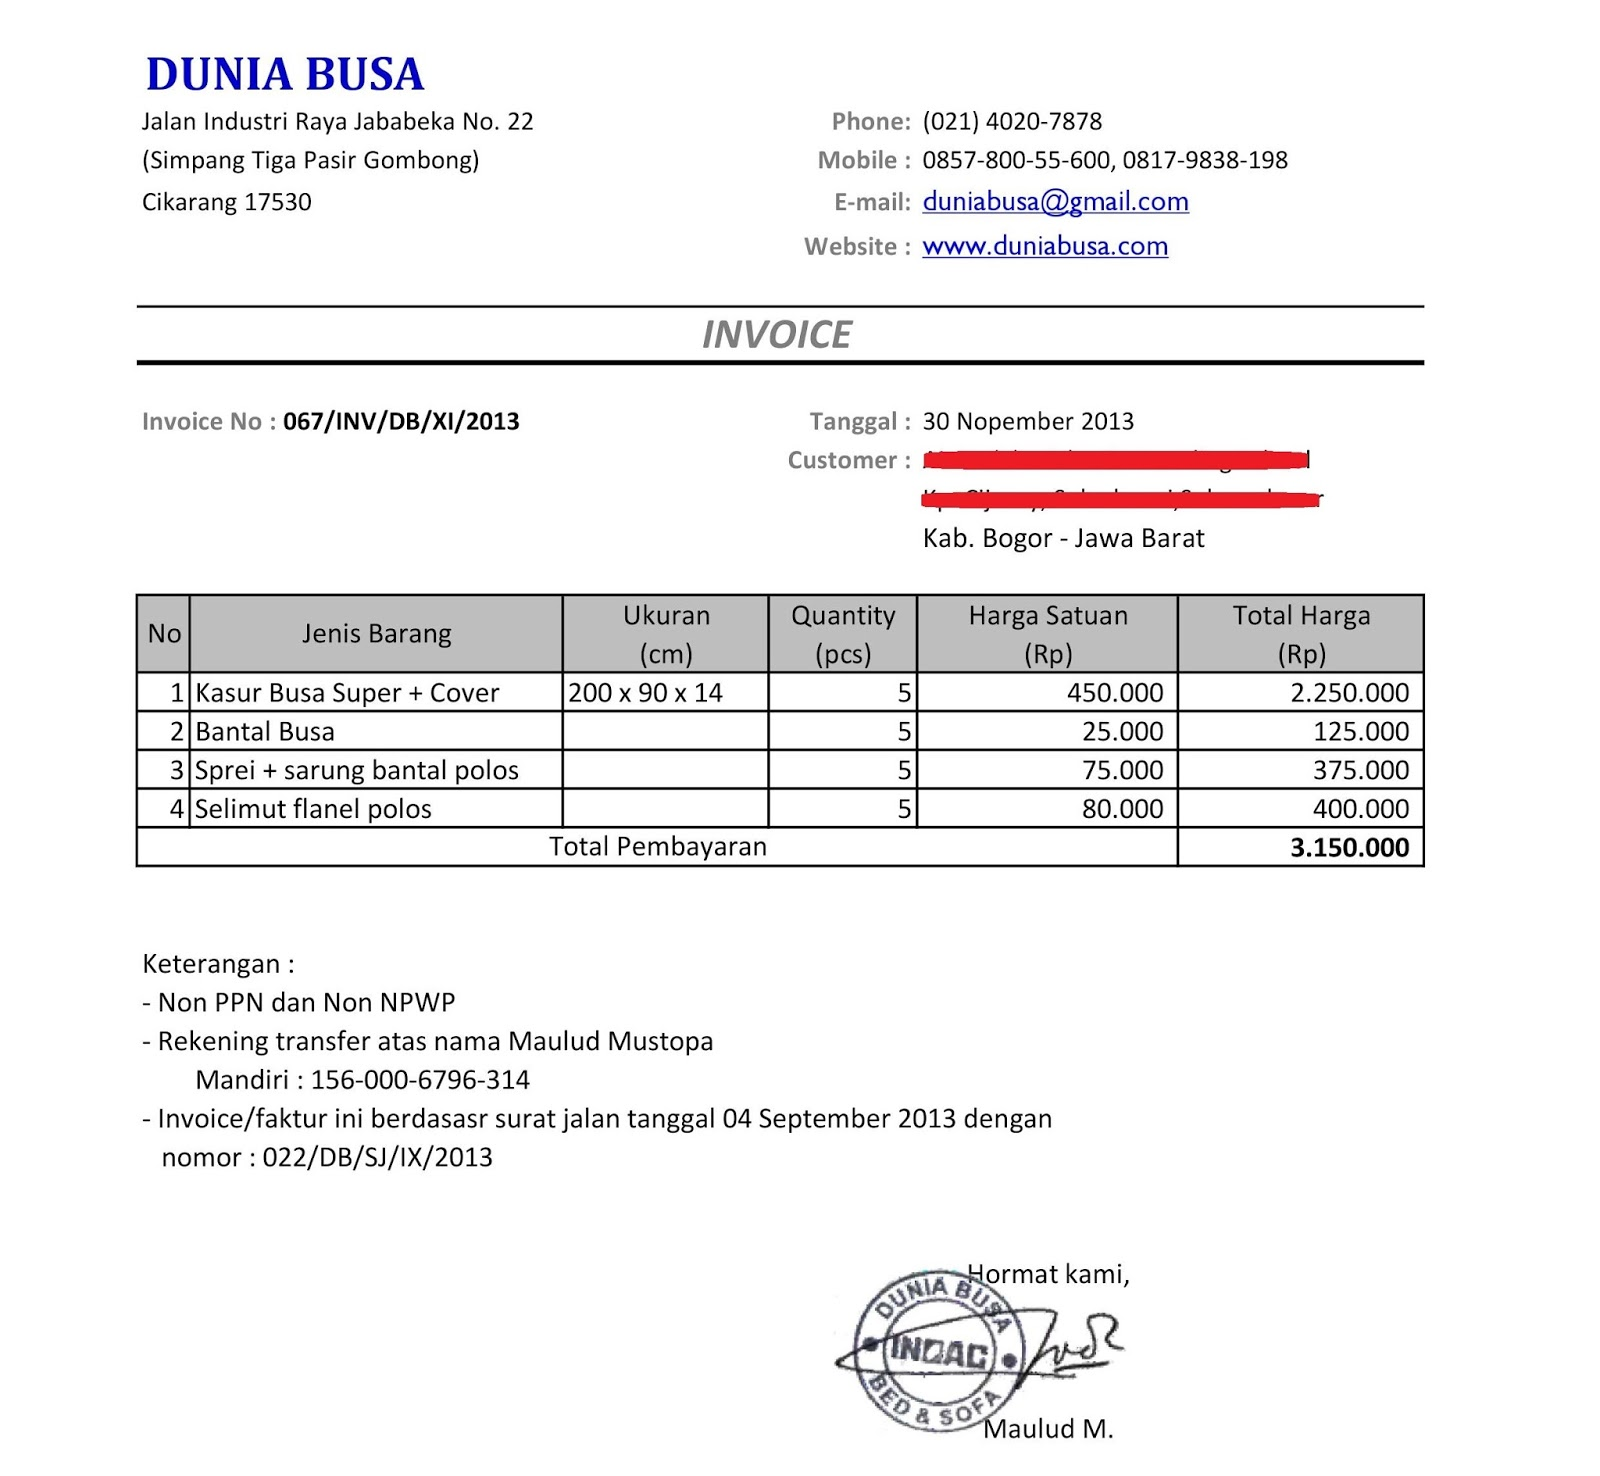 Ultrablogus  Unique Free Invoice Online  Create Invoice Online  Invoice Template  With Inspiring Contoh Format Invoice Atau Surat Tagihan  Brankas Arsip  Free Invoice Online With Agreeable Invoice Contractor Also Sample Word Invoice In Addition Terms On Invoice And Contractor Invoicing Software As Well As Invoice Header Additionally Export Commercial Invoice From Sklepco With Ultrablogus  Inspiring Free Invoice Online  Create Invoice Online  Invoice Template  With Agreeable Contoh Format Invoice Atau Surat Tagihan  Brankas Arsip  Free Invoice Online And Unique Invoice Contractor Also Sample Word Invoice In Addition Terms On Invoice From Sklepco